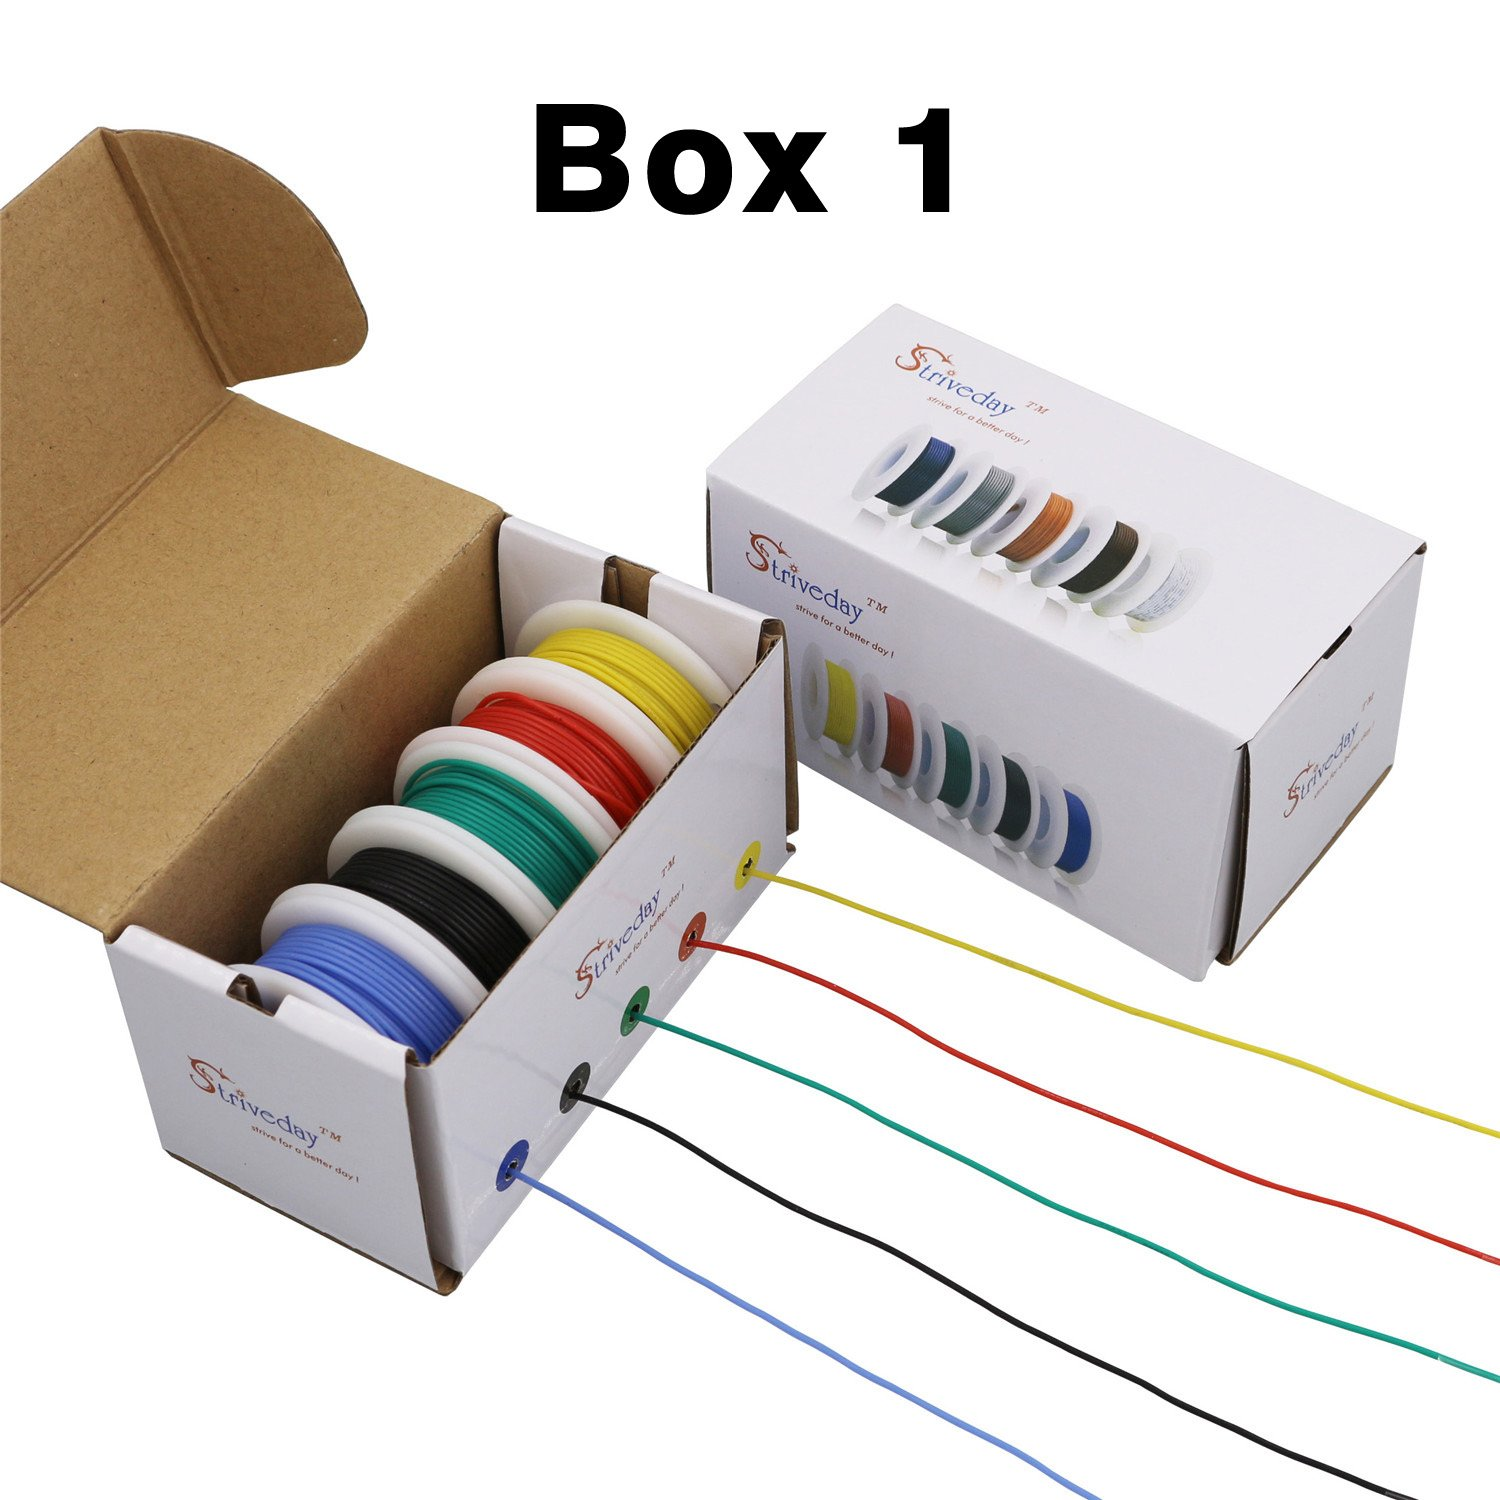 Strivedaytm 26 awg flexible silicone wire electric wire 26 gauge strivedaytm 26 awg flexible silicone wire electric wire 26 gauge coper hook up wire 300v cables electronic stranded wire cable electrics diy box 1 greentooth